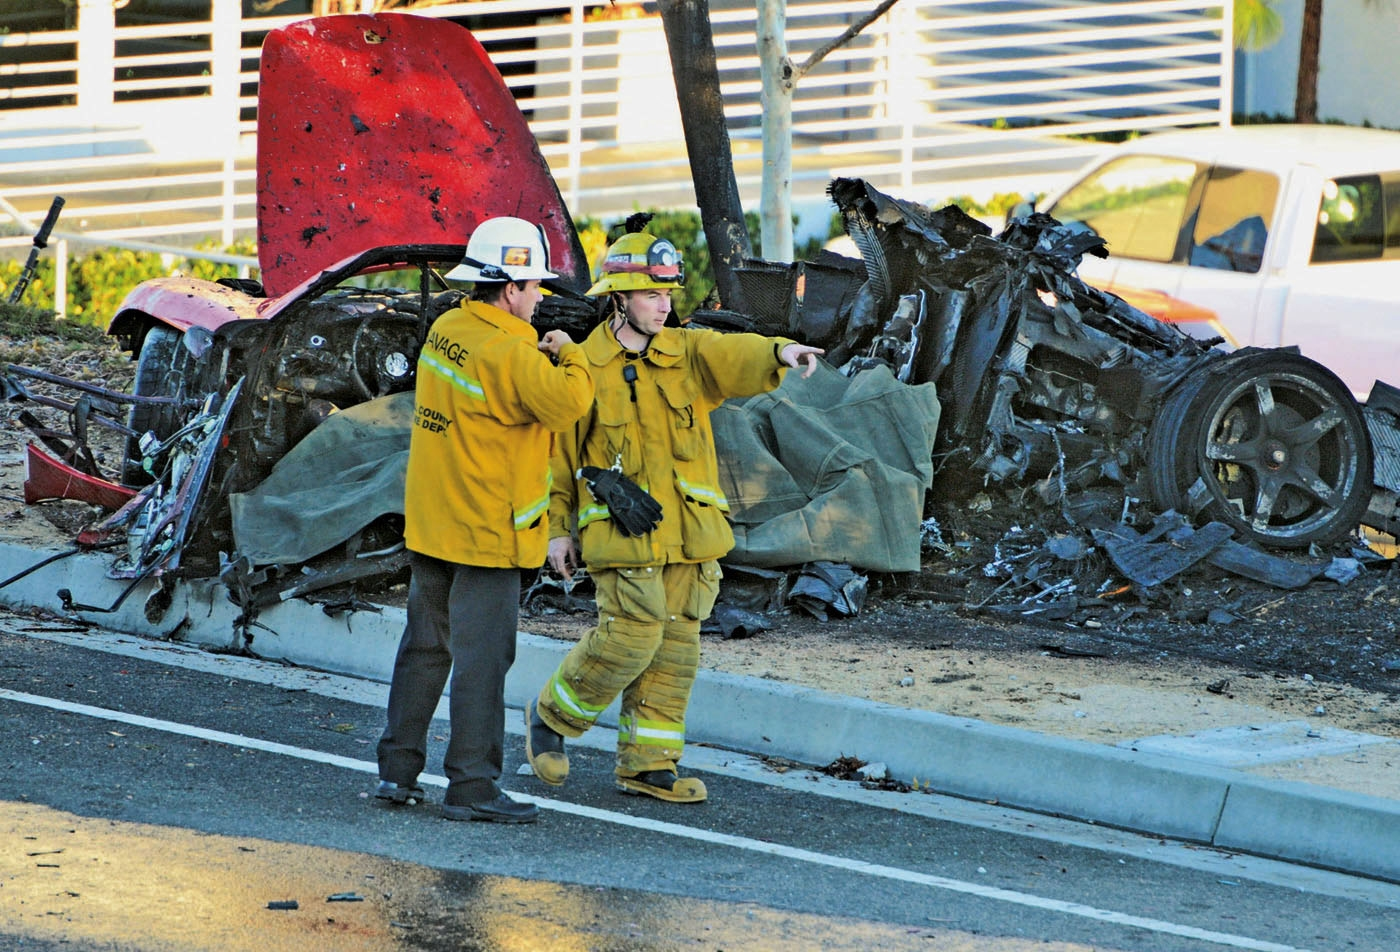 A coroner's report says the Porsche carrying Paul Walker may have been going 100 mph or more before it crashed.